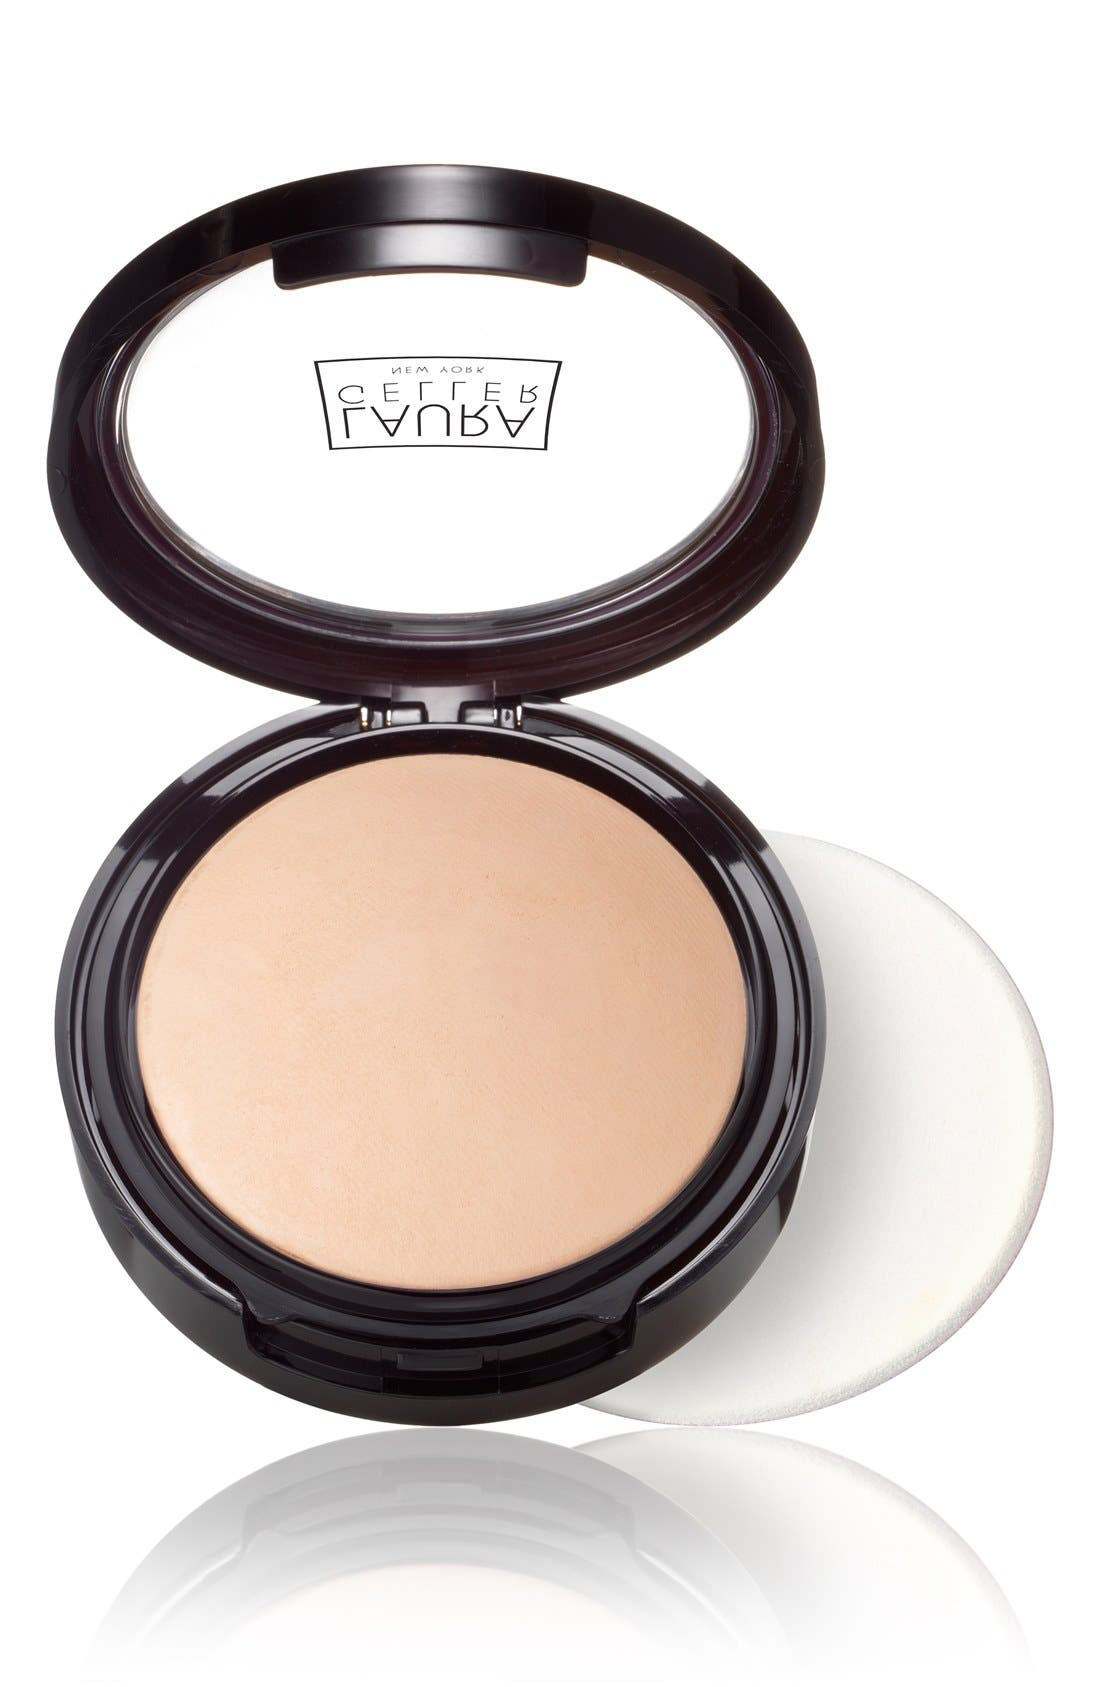 Laura Geller Beauty 'Double Take' Baked Versatile Powder Foundation